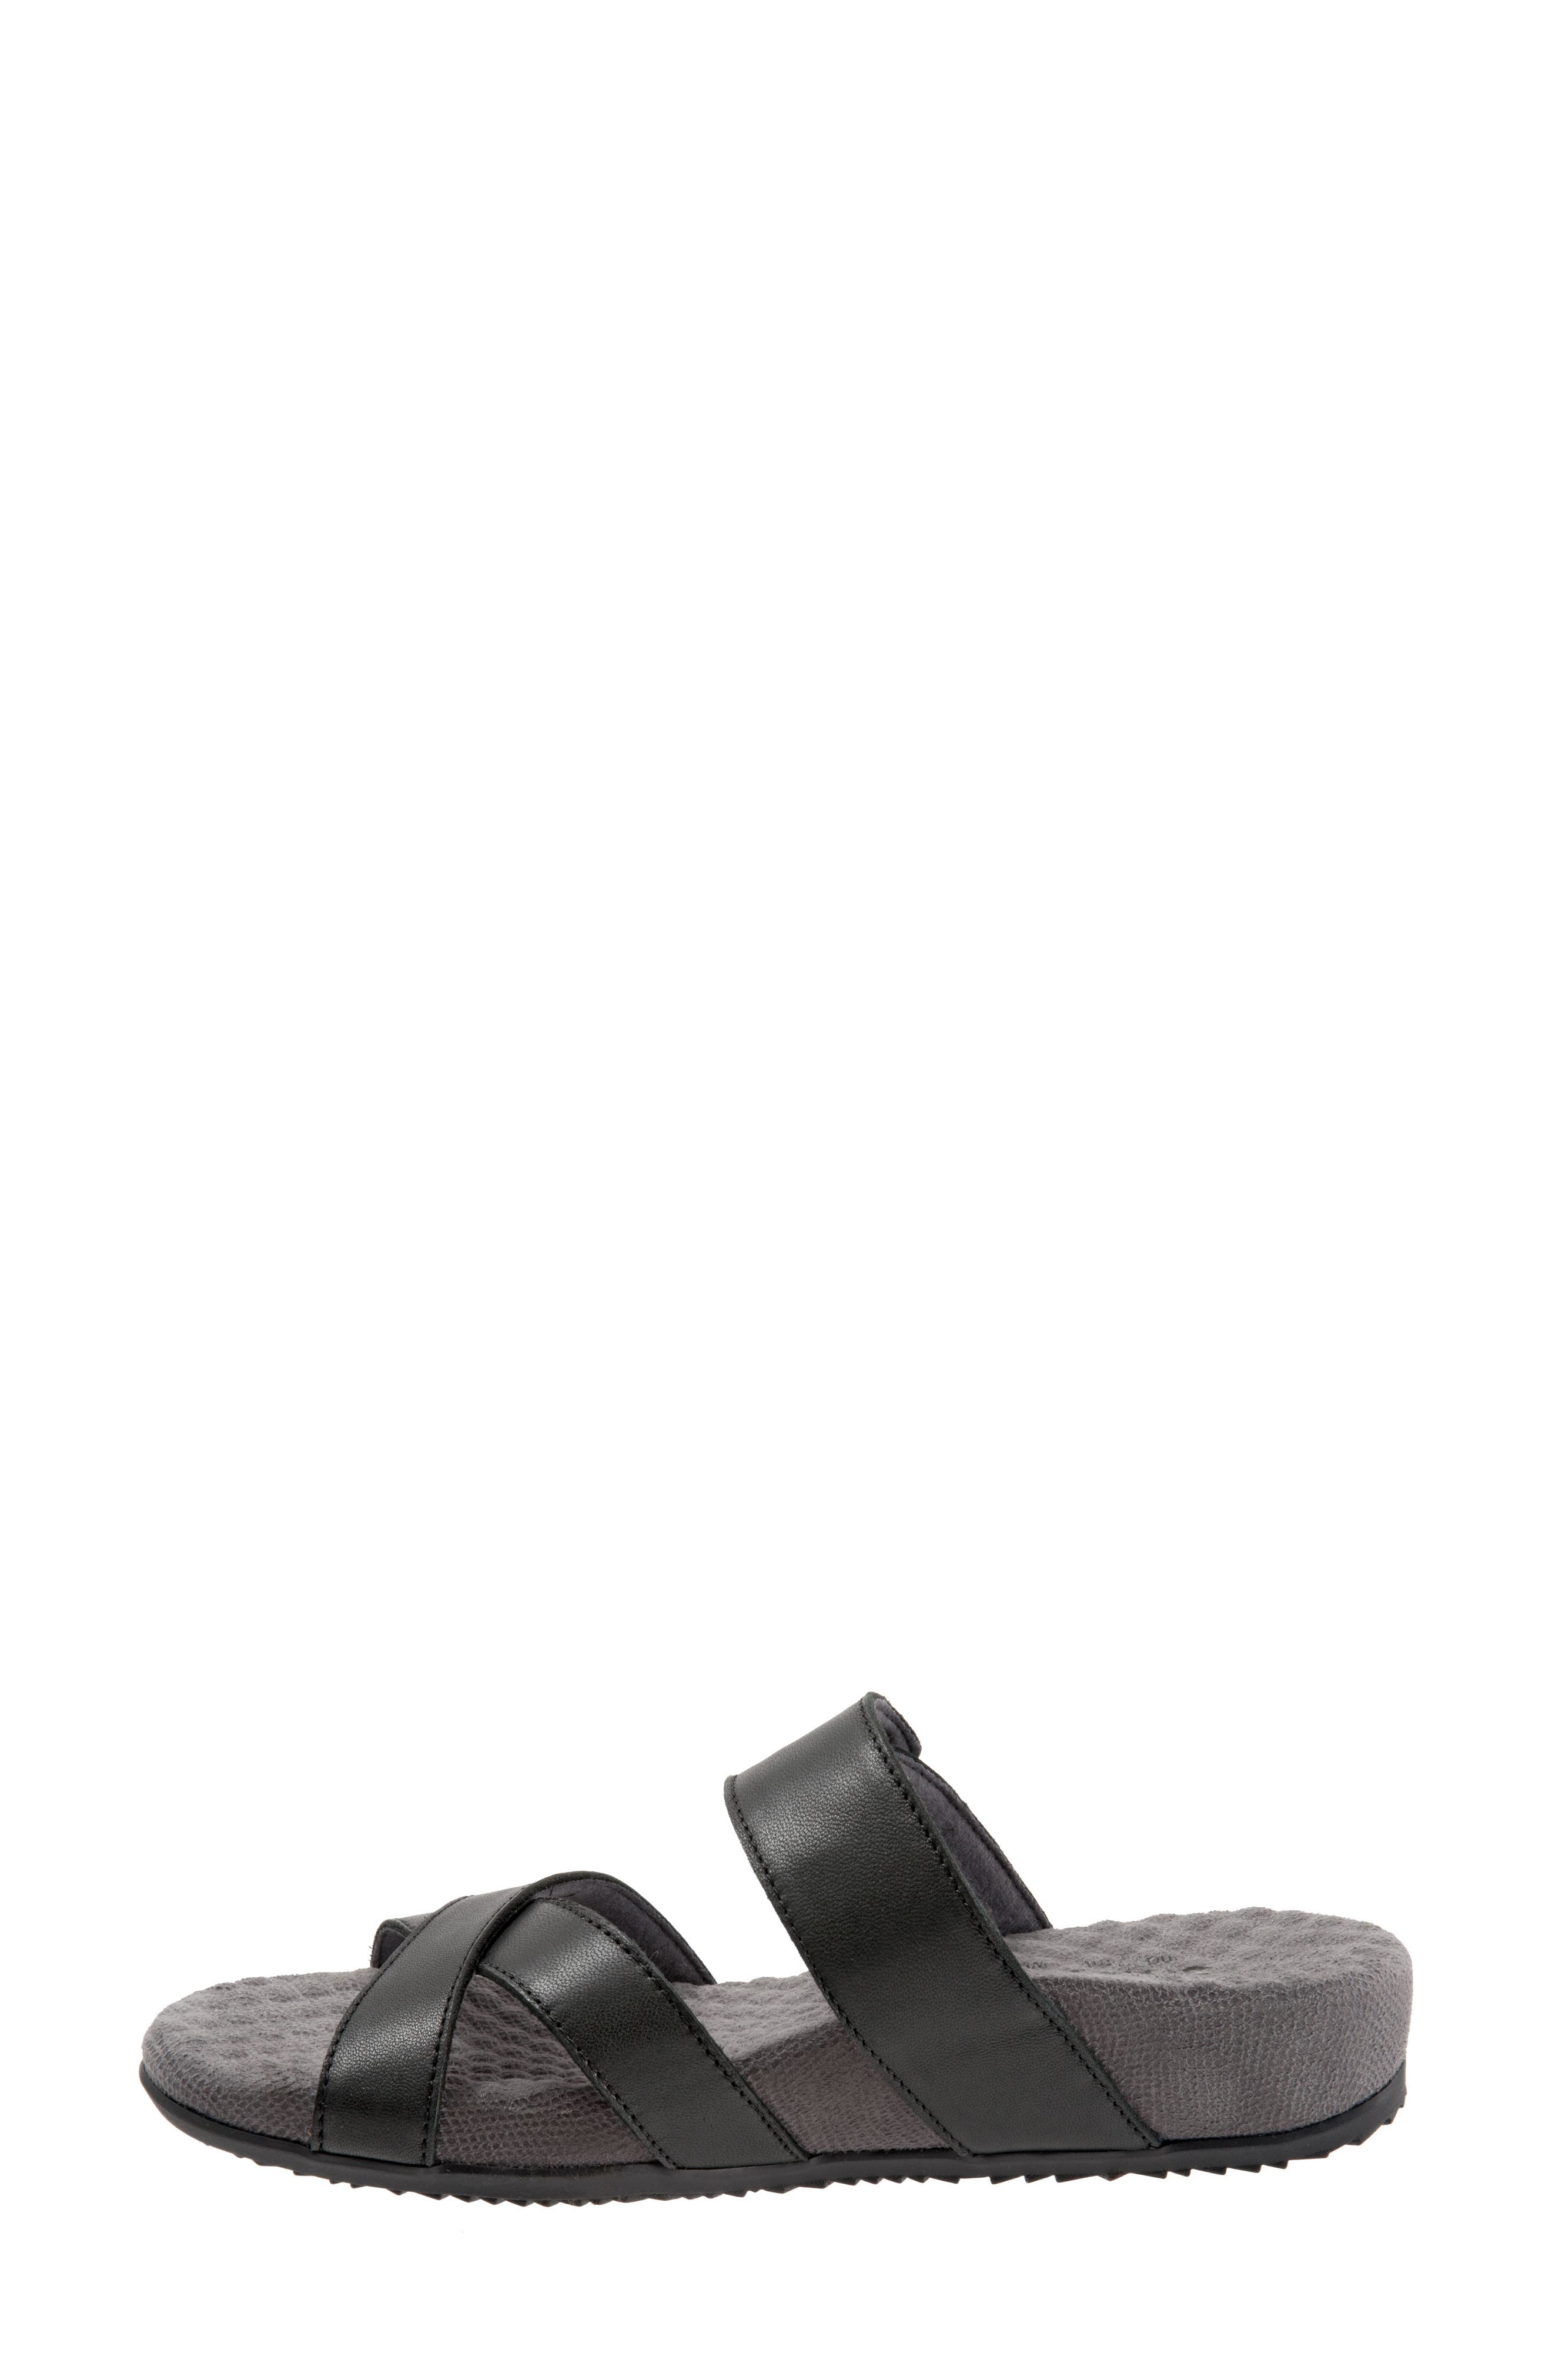 Brimley Sandal,                             Alternate thumbnail 8, color,                             Black Leather